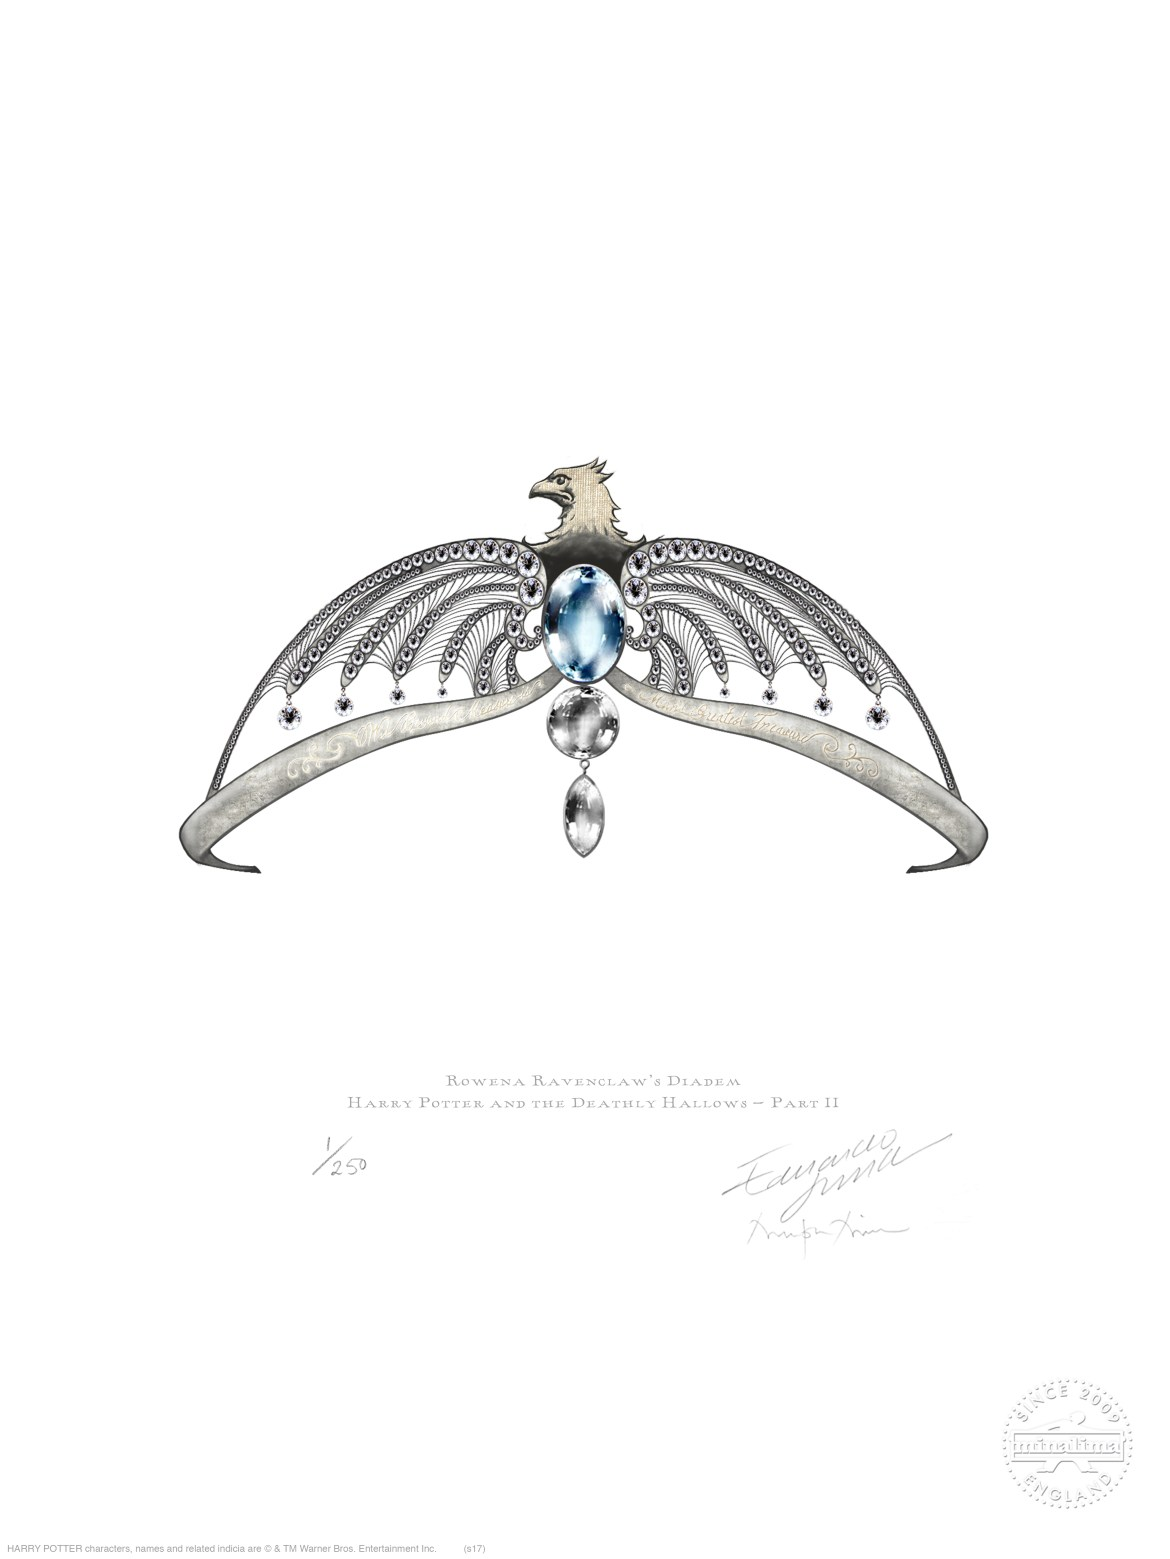 Rowena Ravenclaw's Diadem, featured in Harry Potter and the Deathly Hallows Part 2